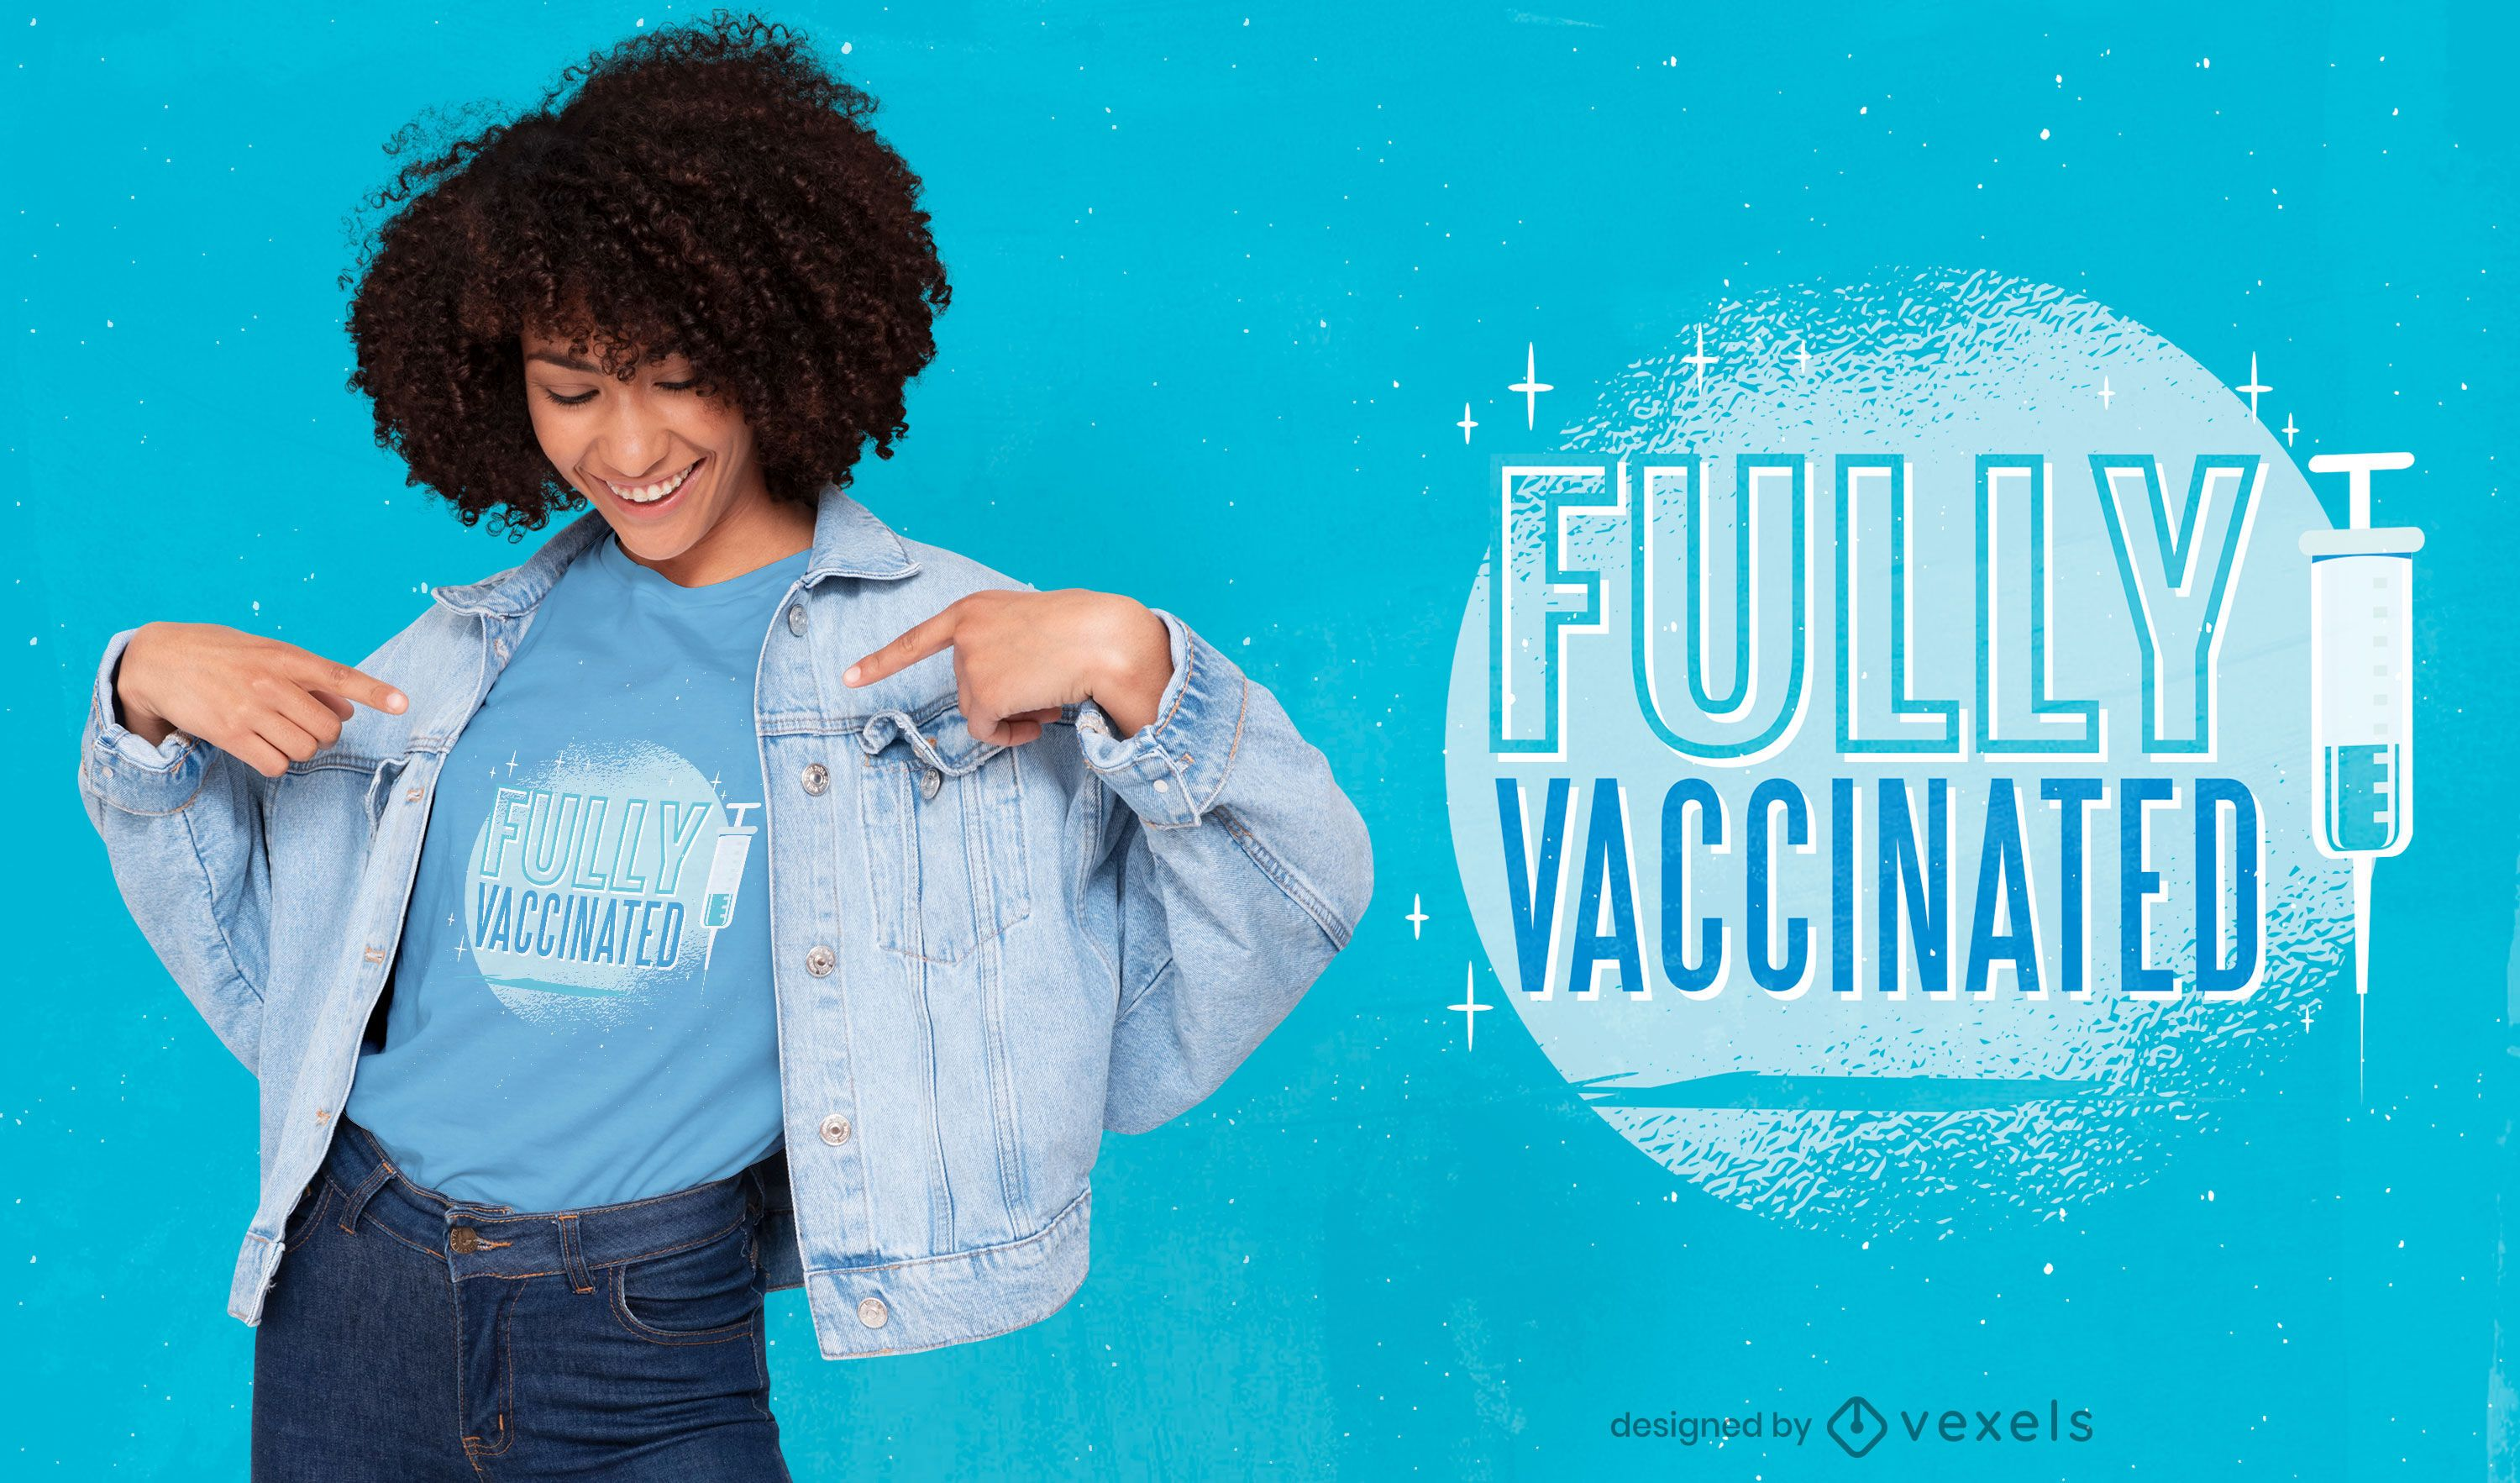 Fully vaccinated t-shirt design